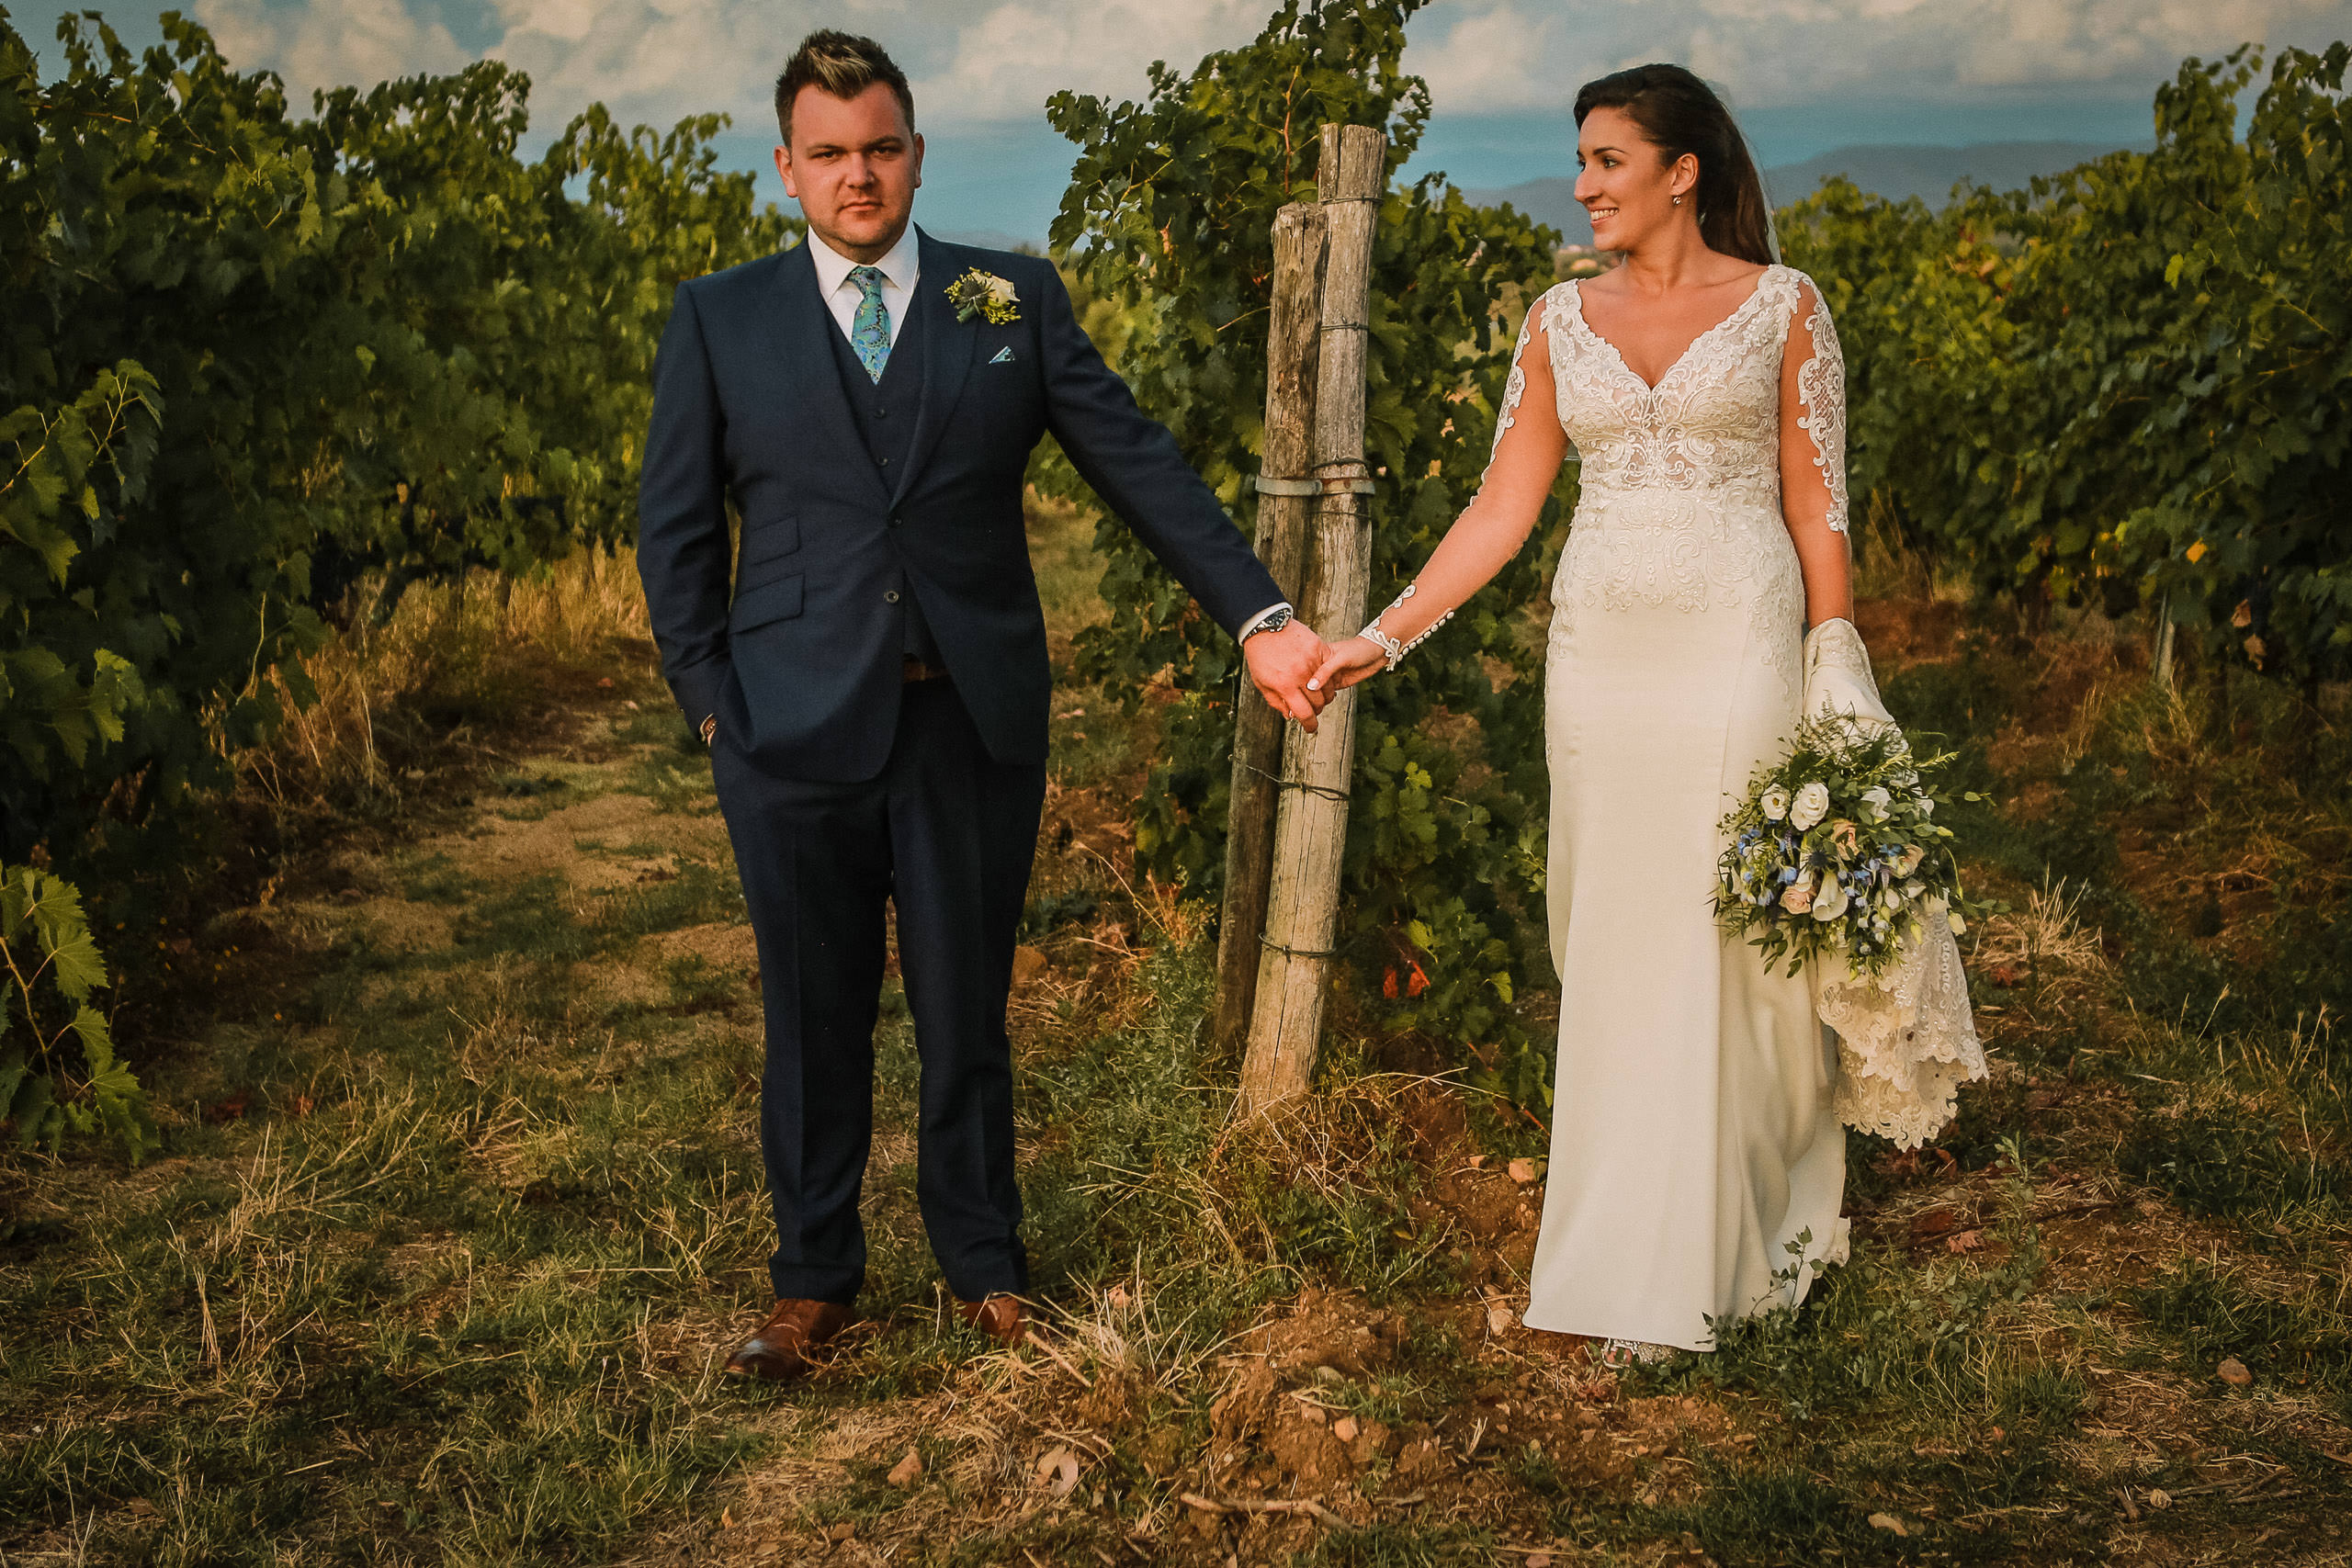 Tuscany wedding photography bride and groom in Tuscan vineyards